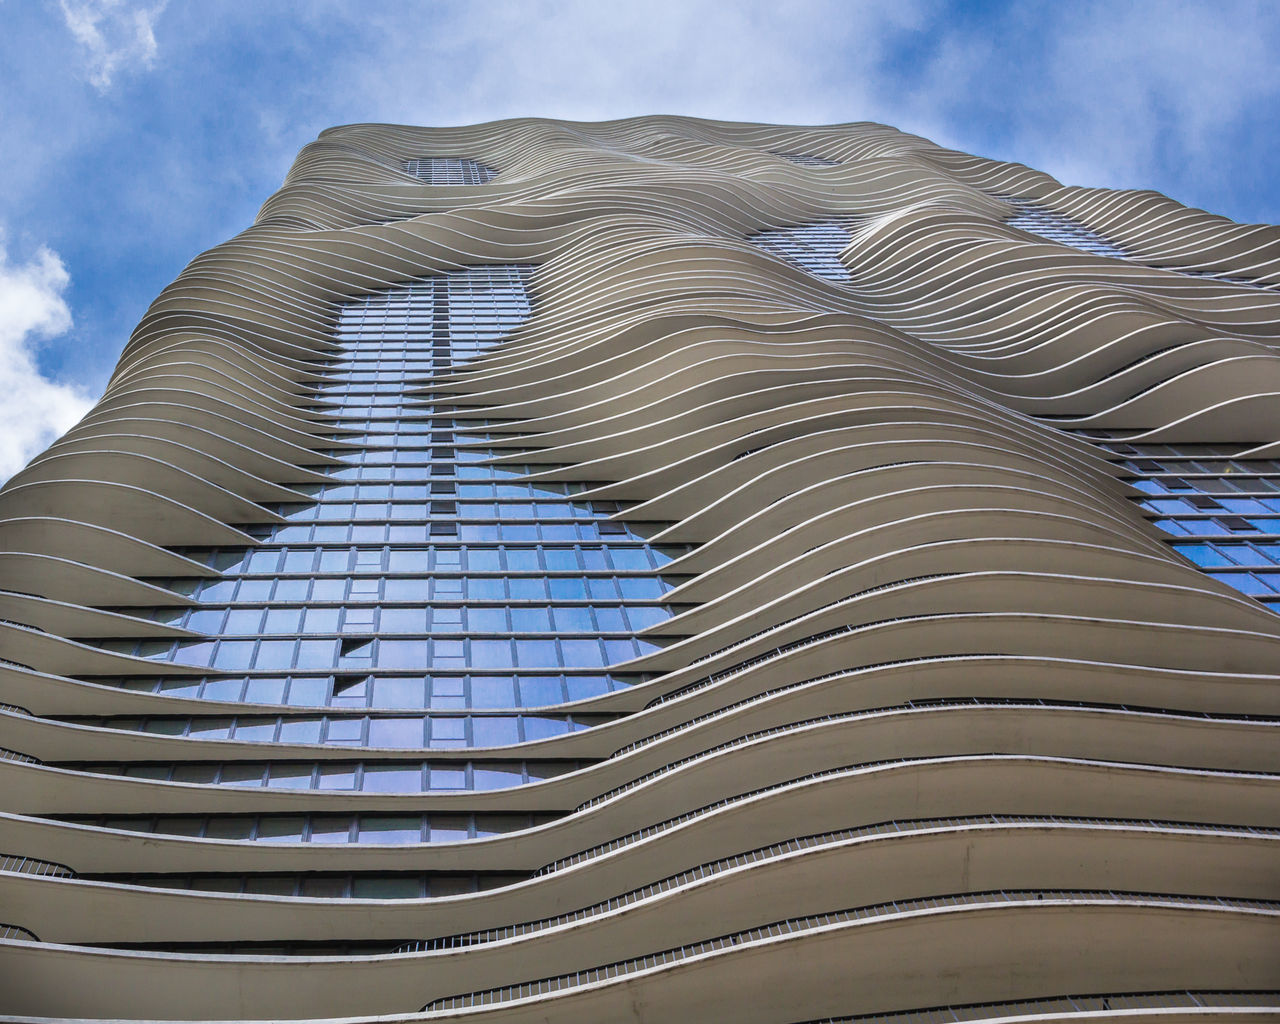 Architecture Architecture Architecture_collection Backgrounds Building Exterior Built Structure Close-up Cloud - Sky Day Low Angle View Modern No People Outdoors Sky